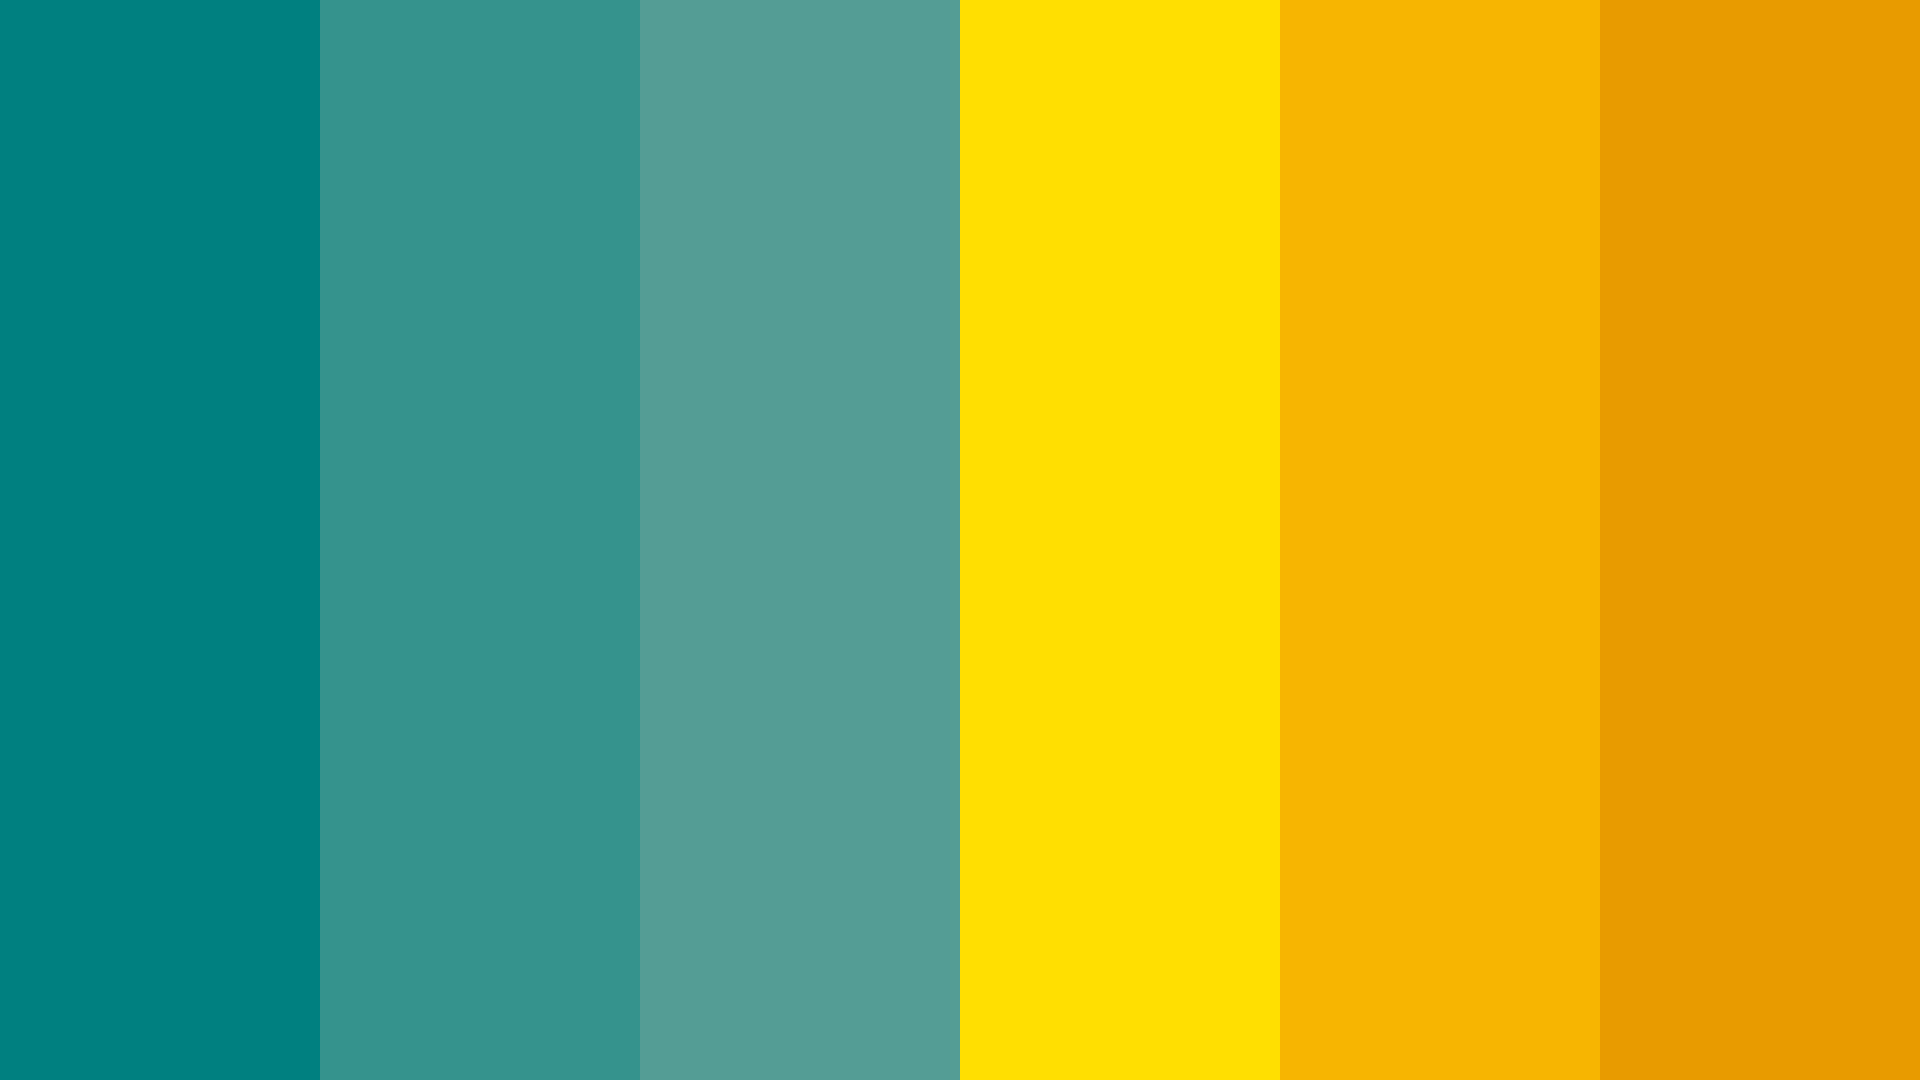 Teal And Gold Color Palette